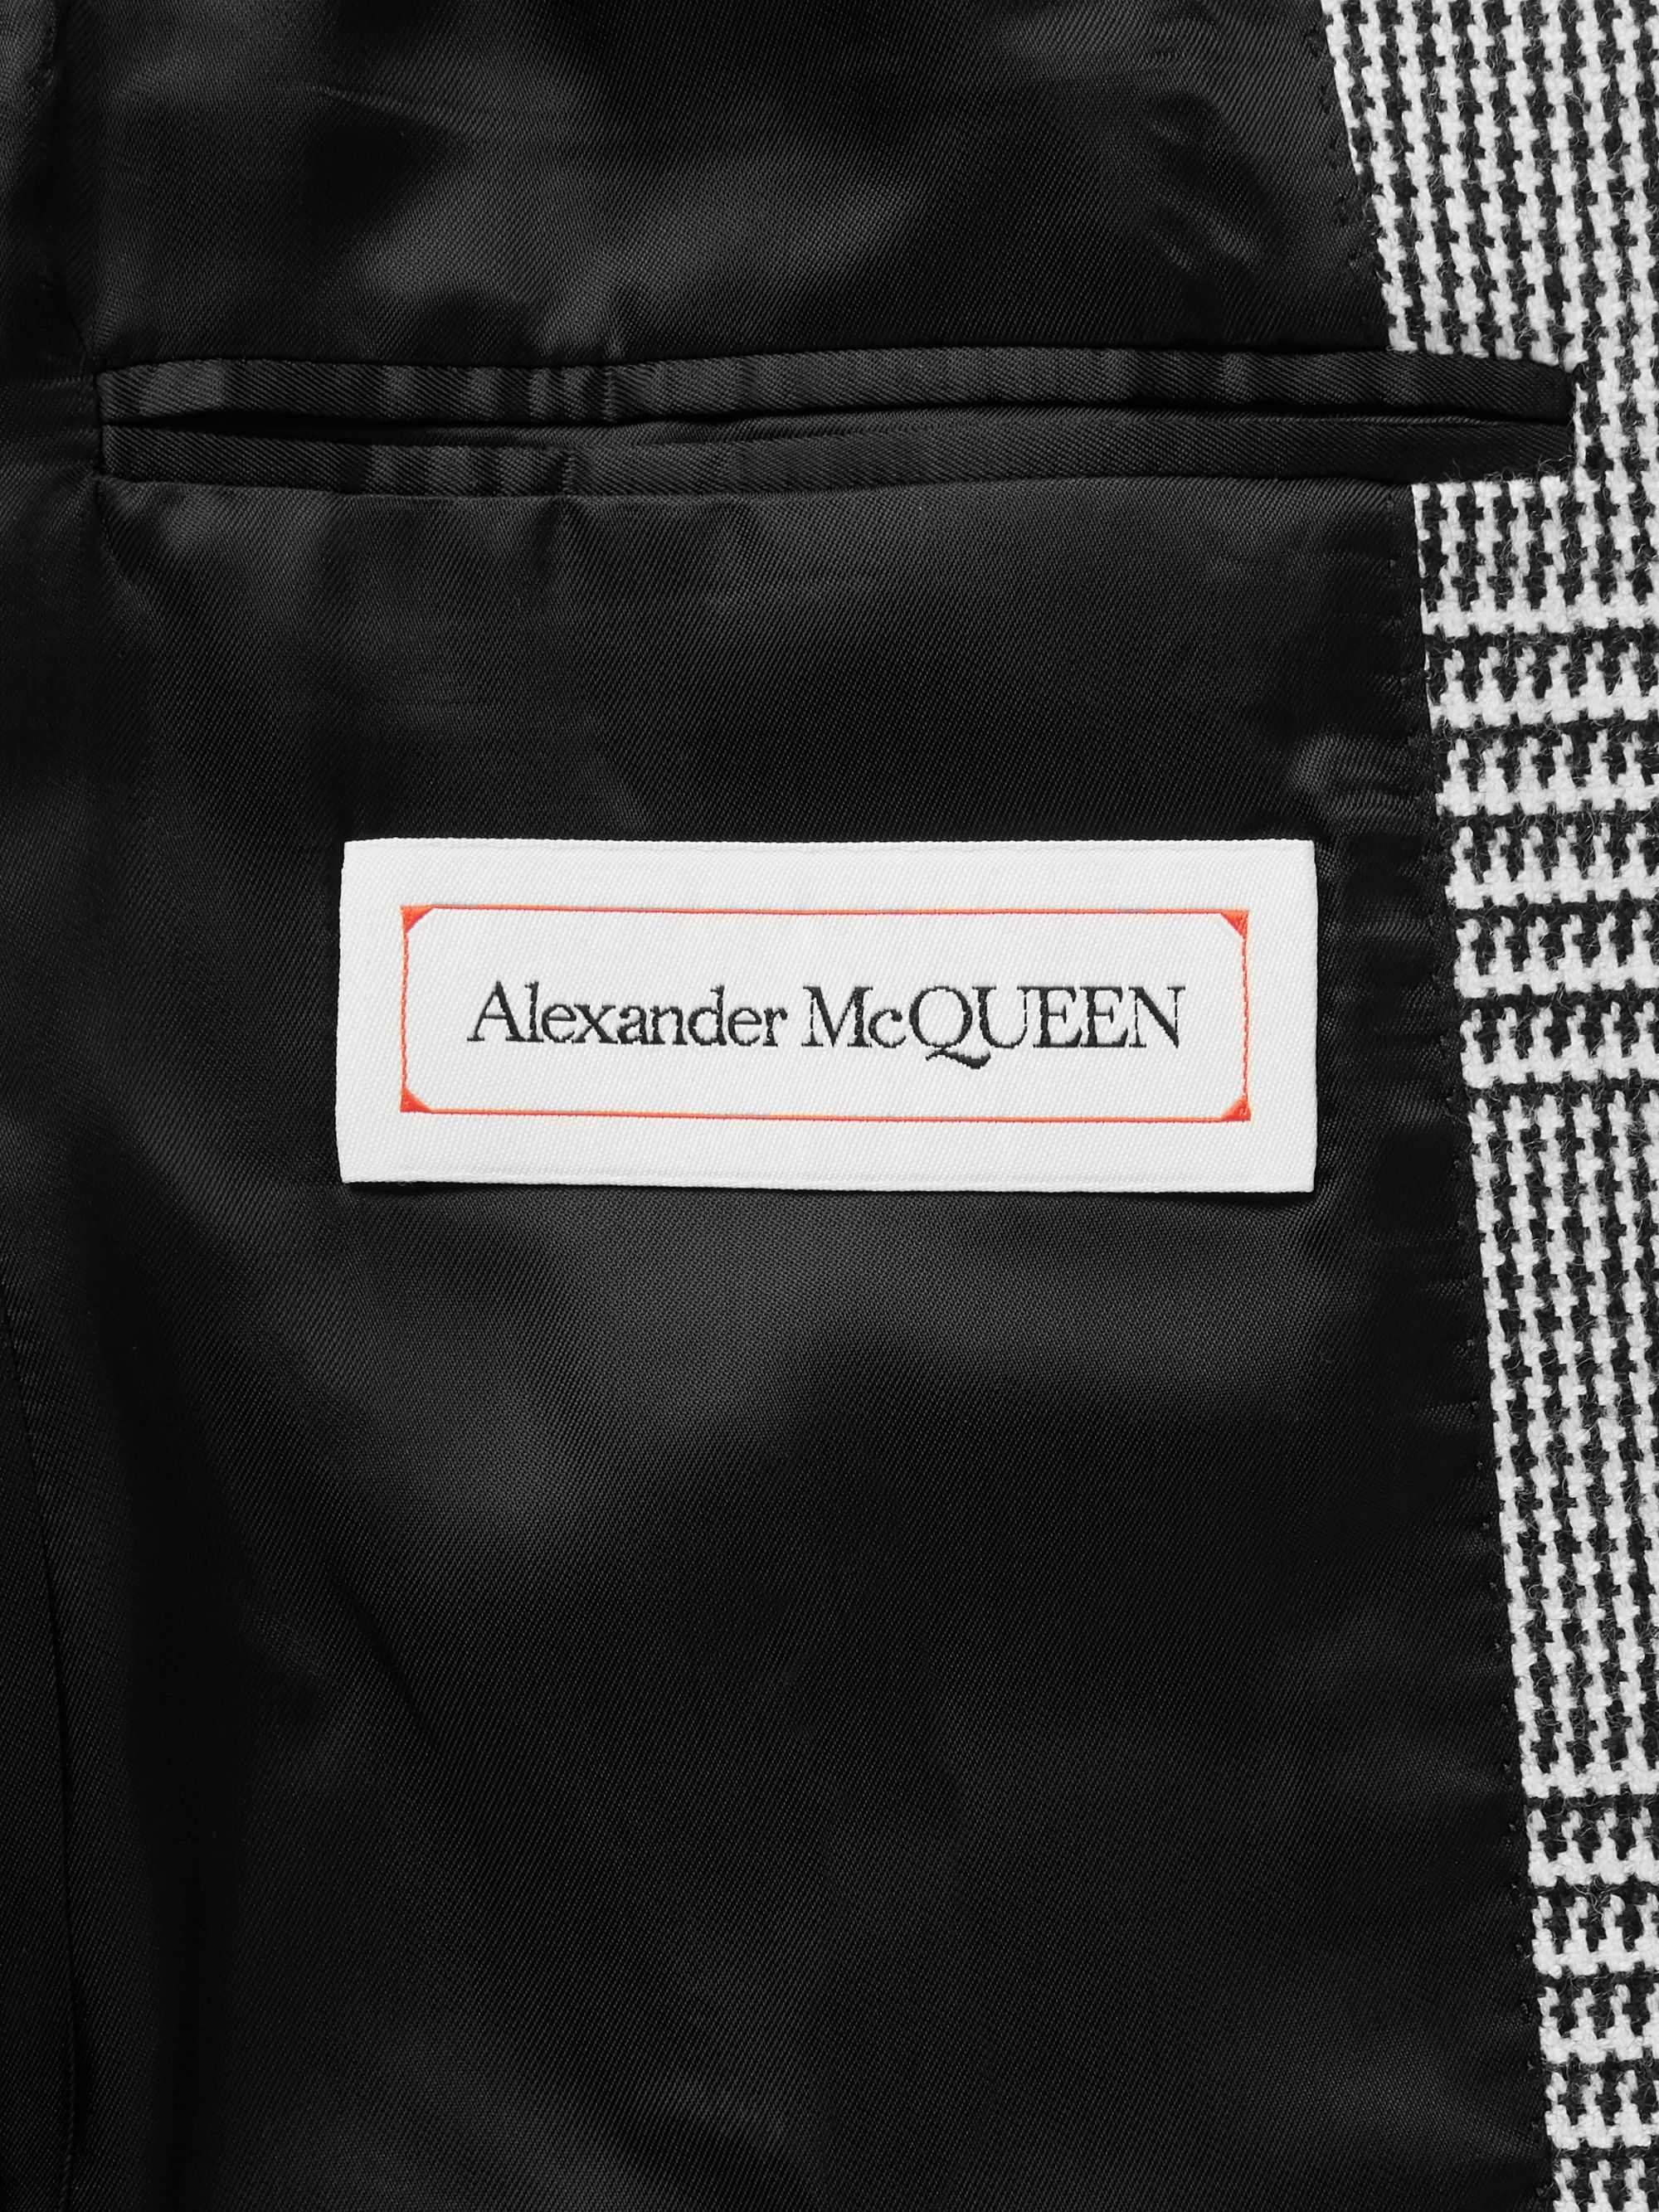 Alexander McQueen Slim-Fit Checked Virgin Wool Suit Jacket